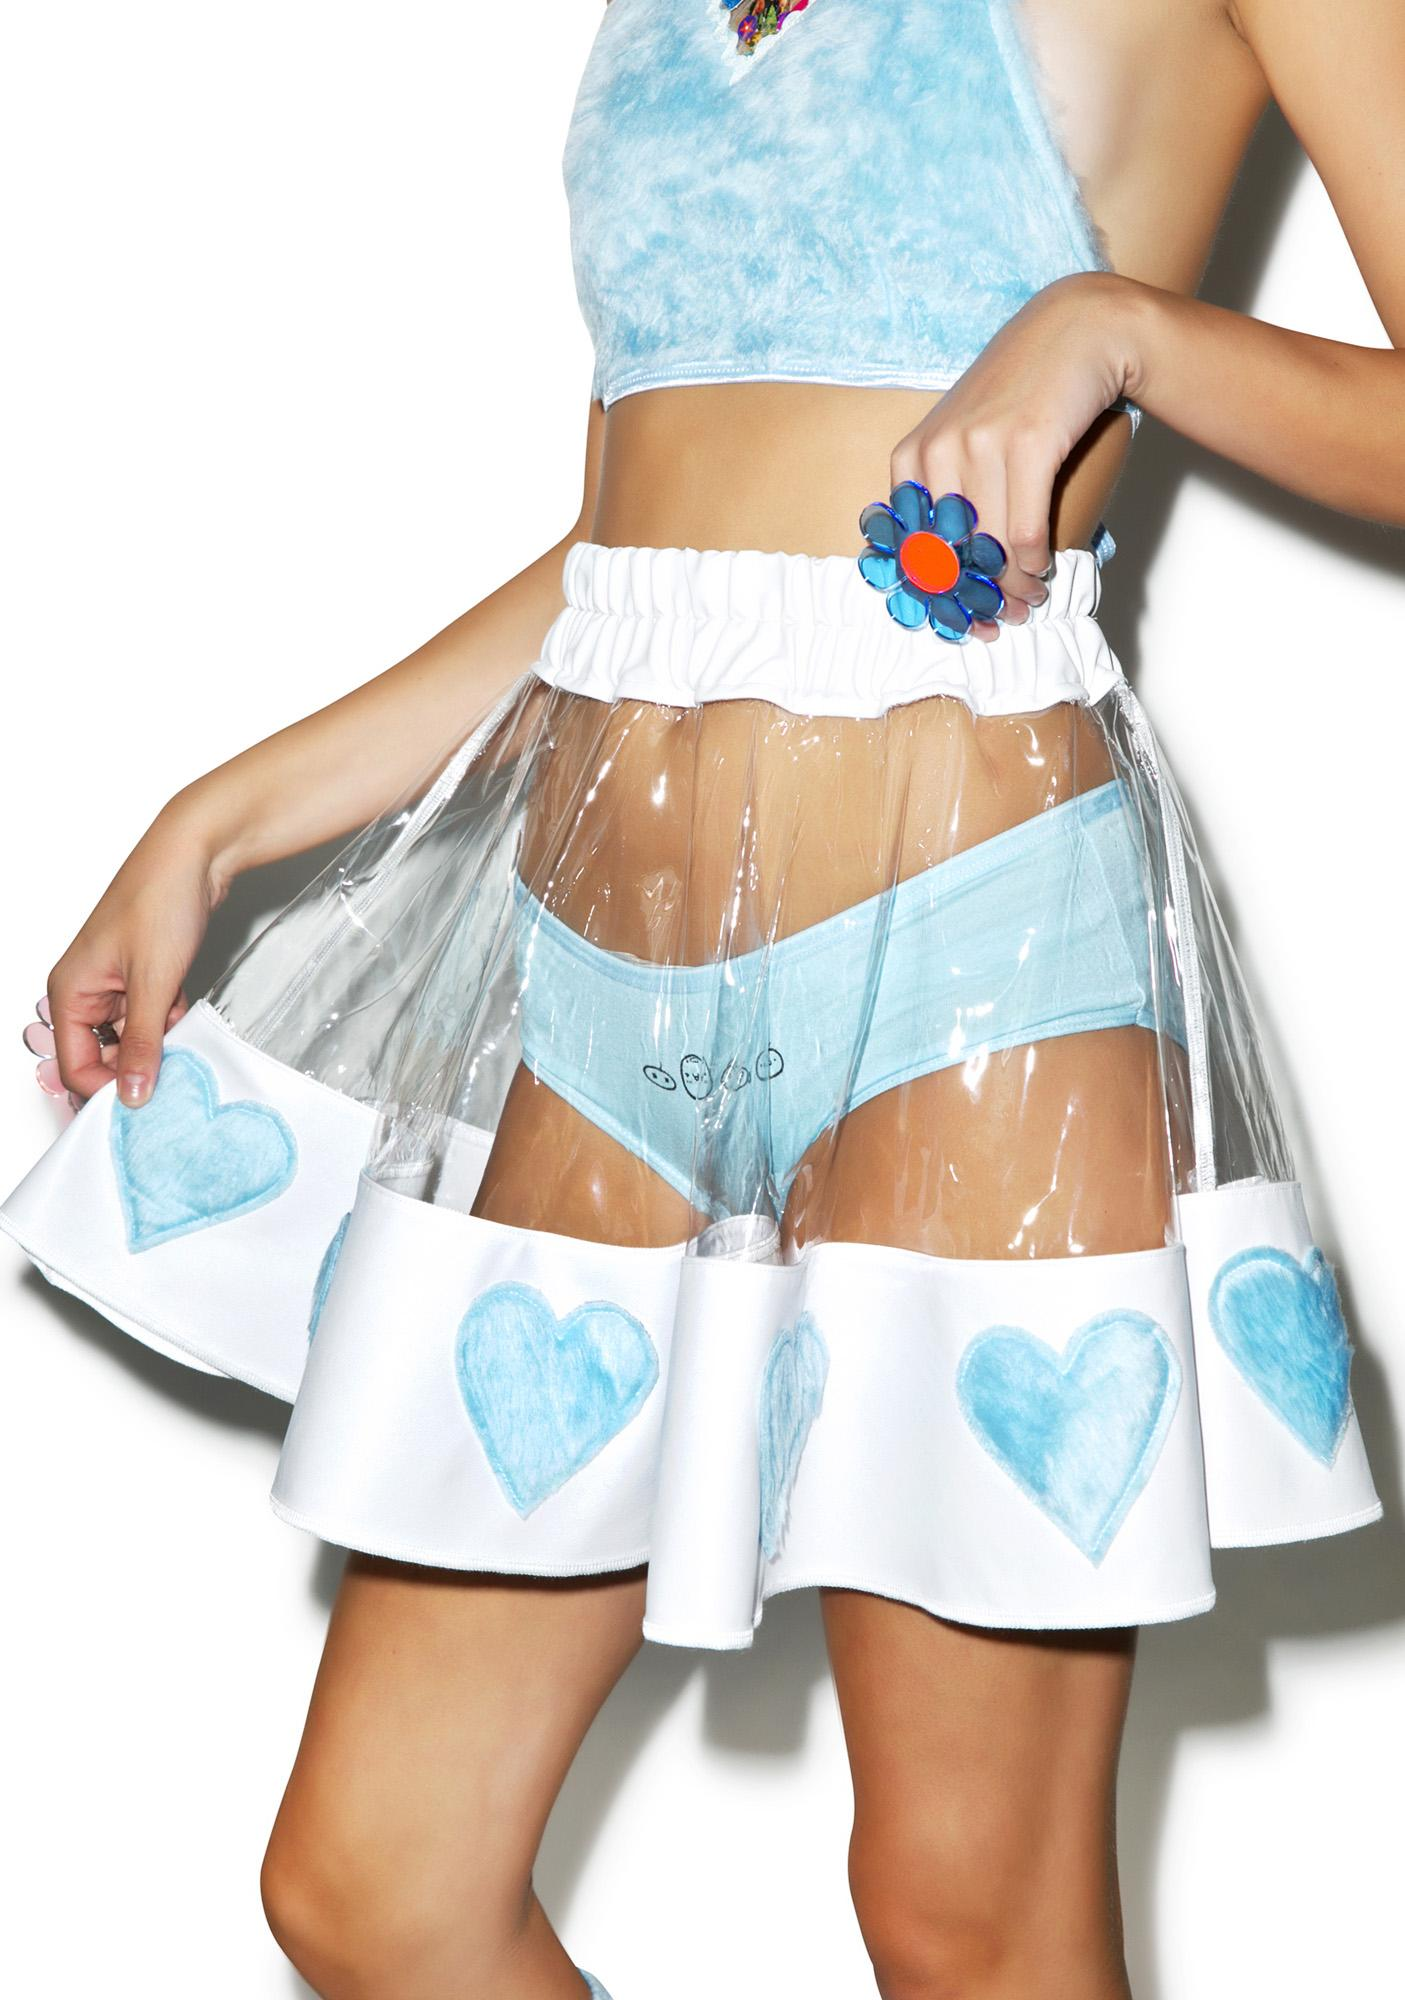 Find great deals on eBay for White PVC Skirt in Skirts, Clothing, Shoes and Accessories for Women. Shop with confidence.